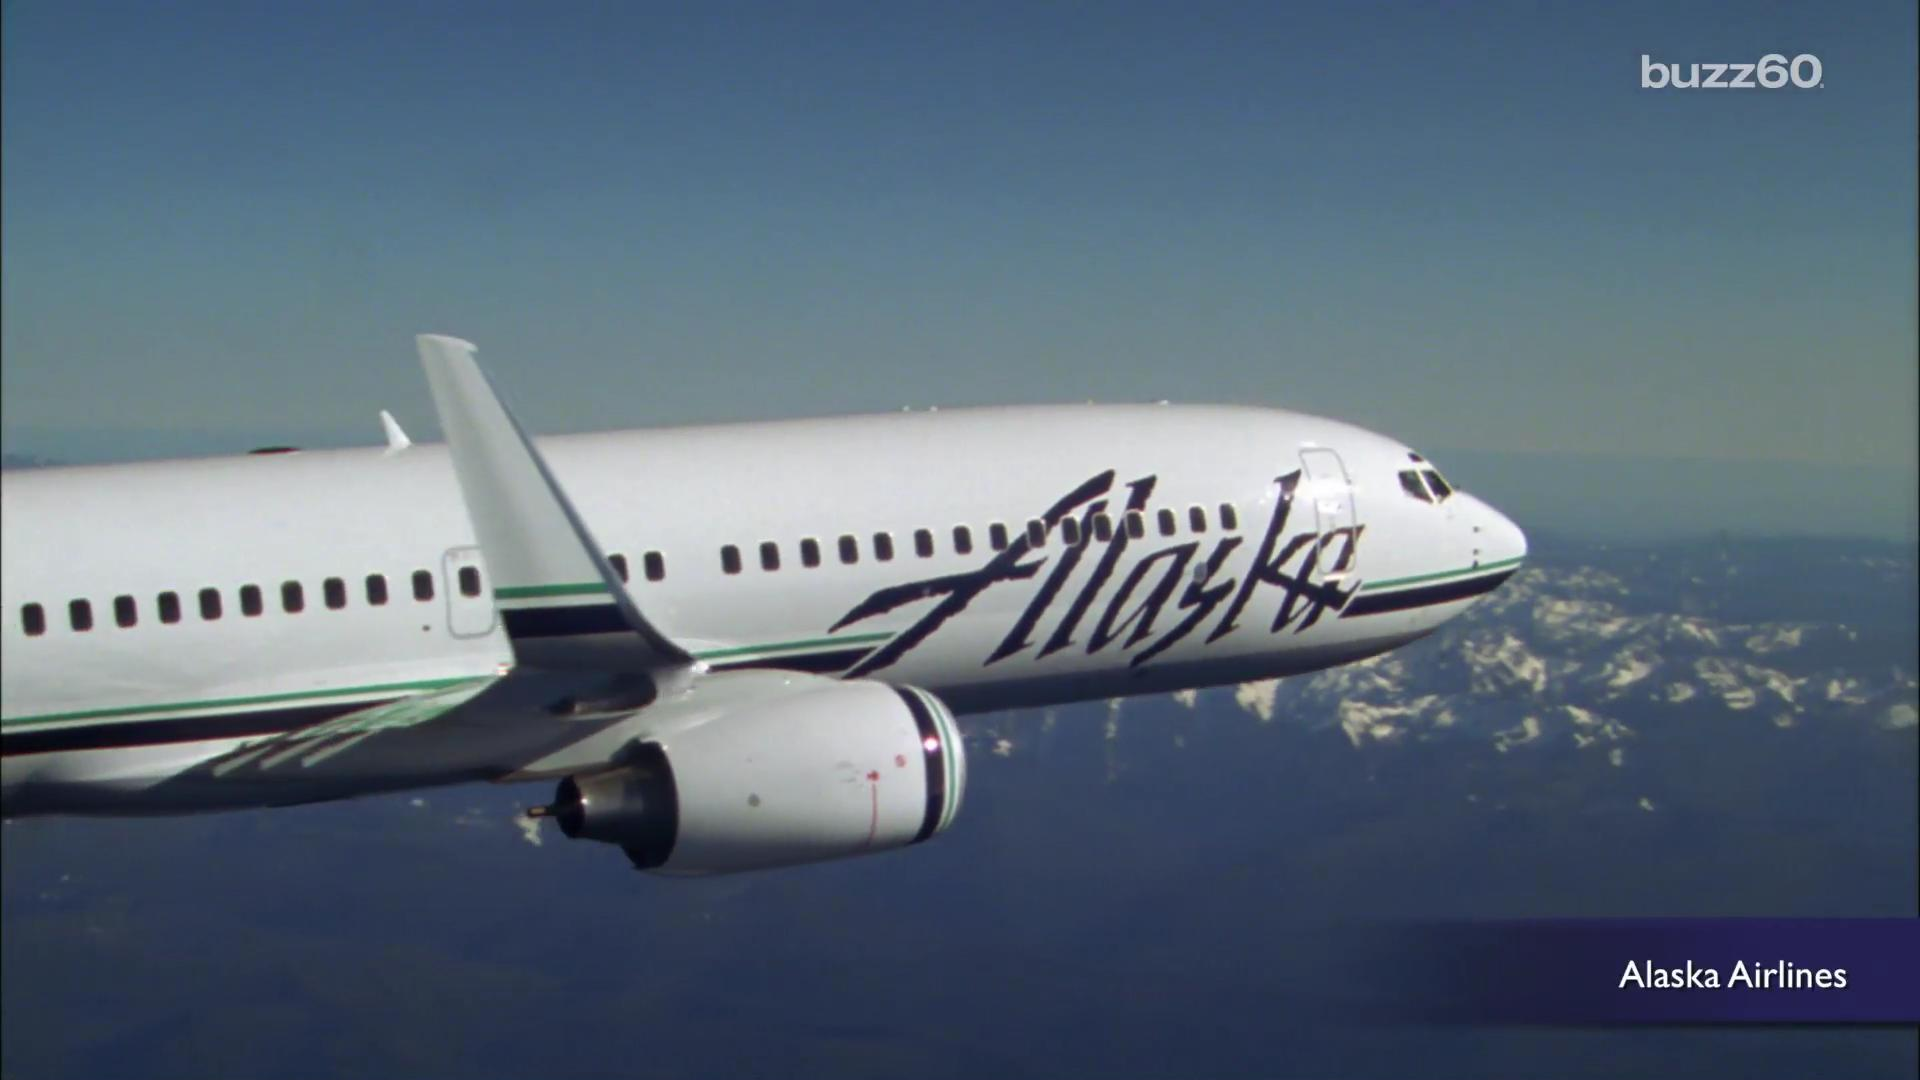 Alaska Airlines loses its own CEO's luggage